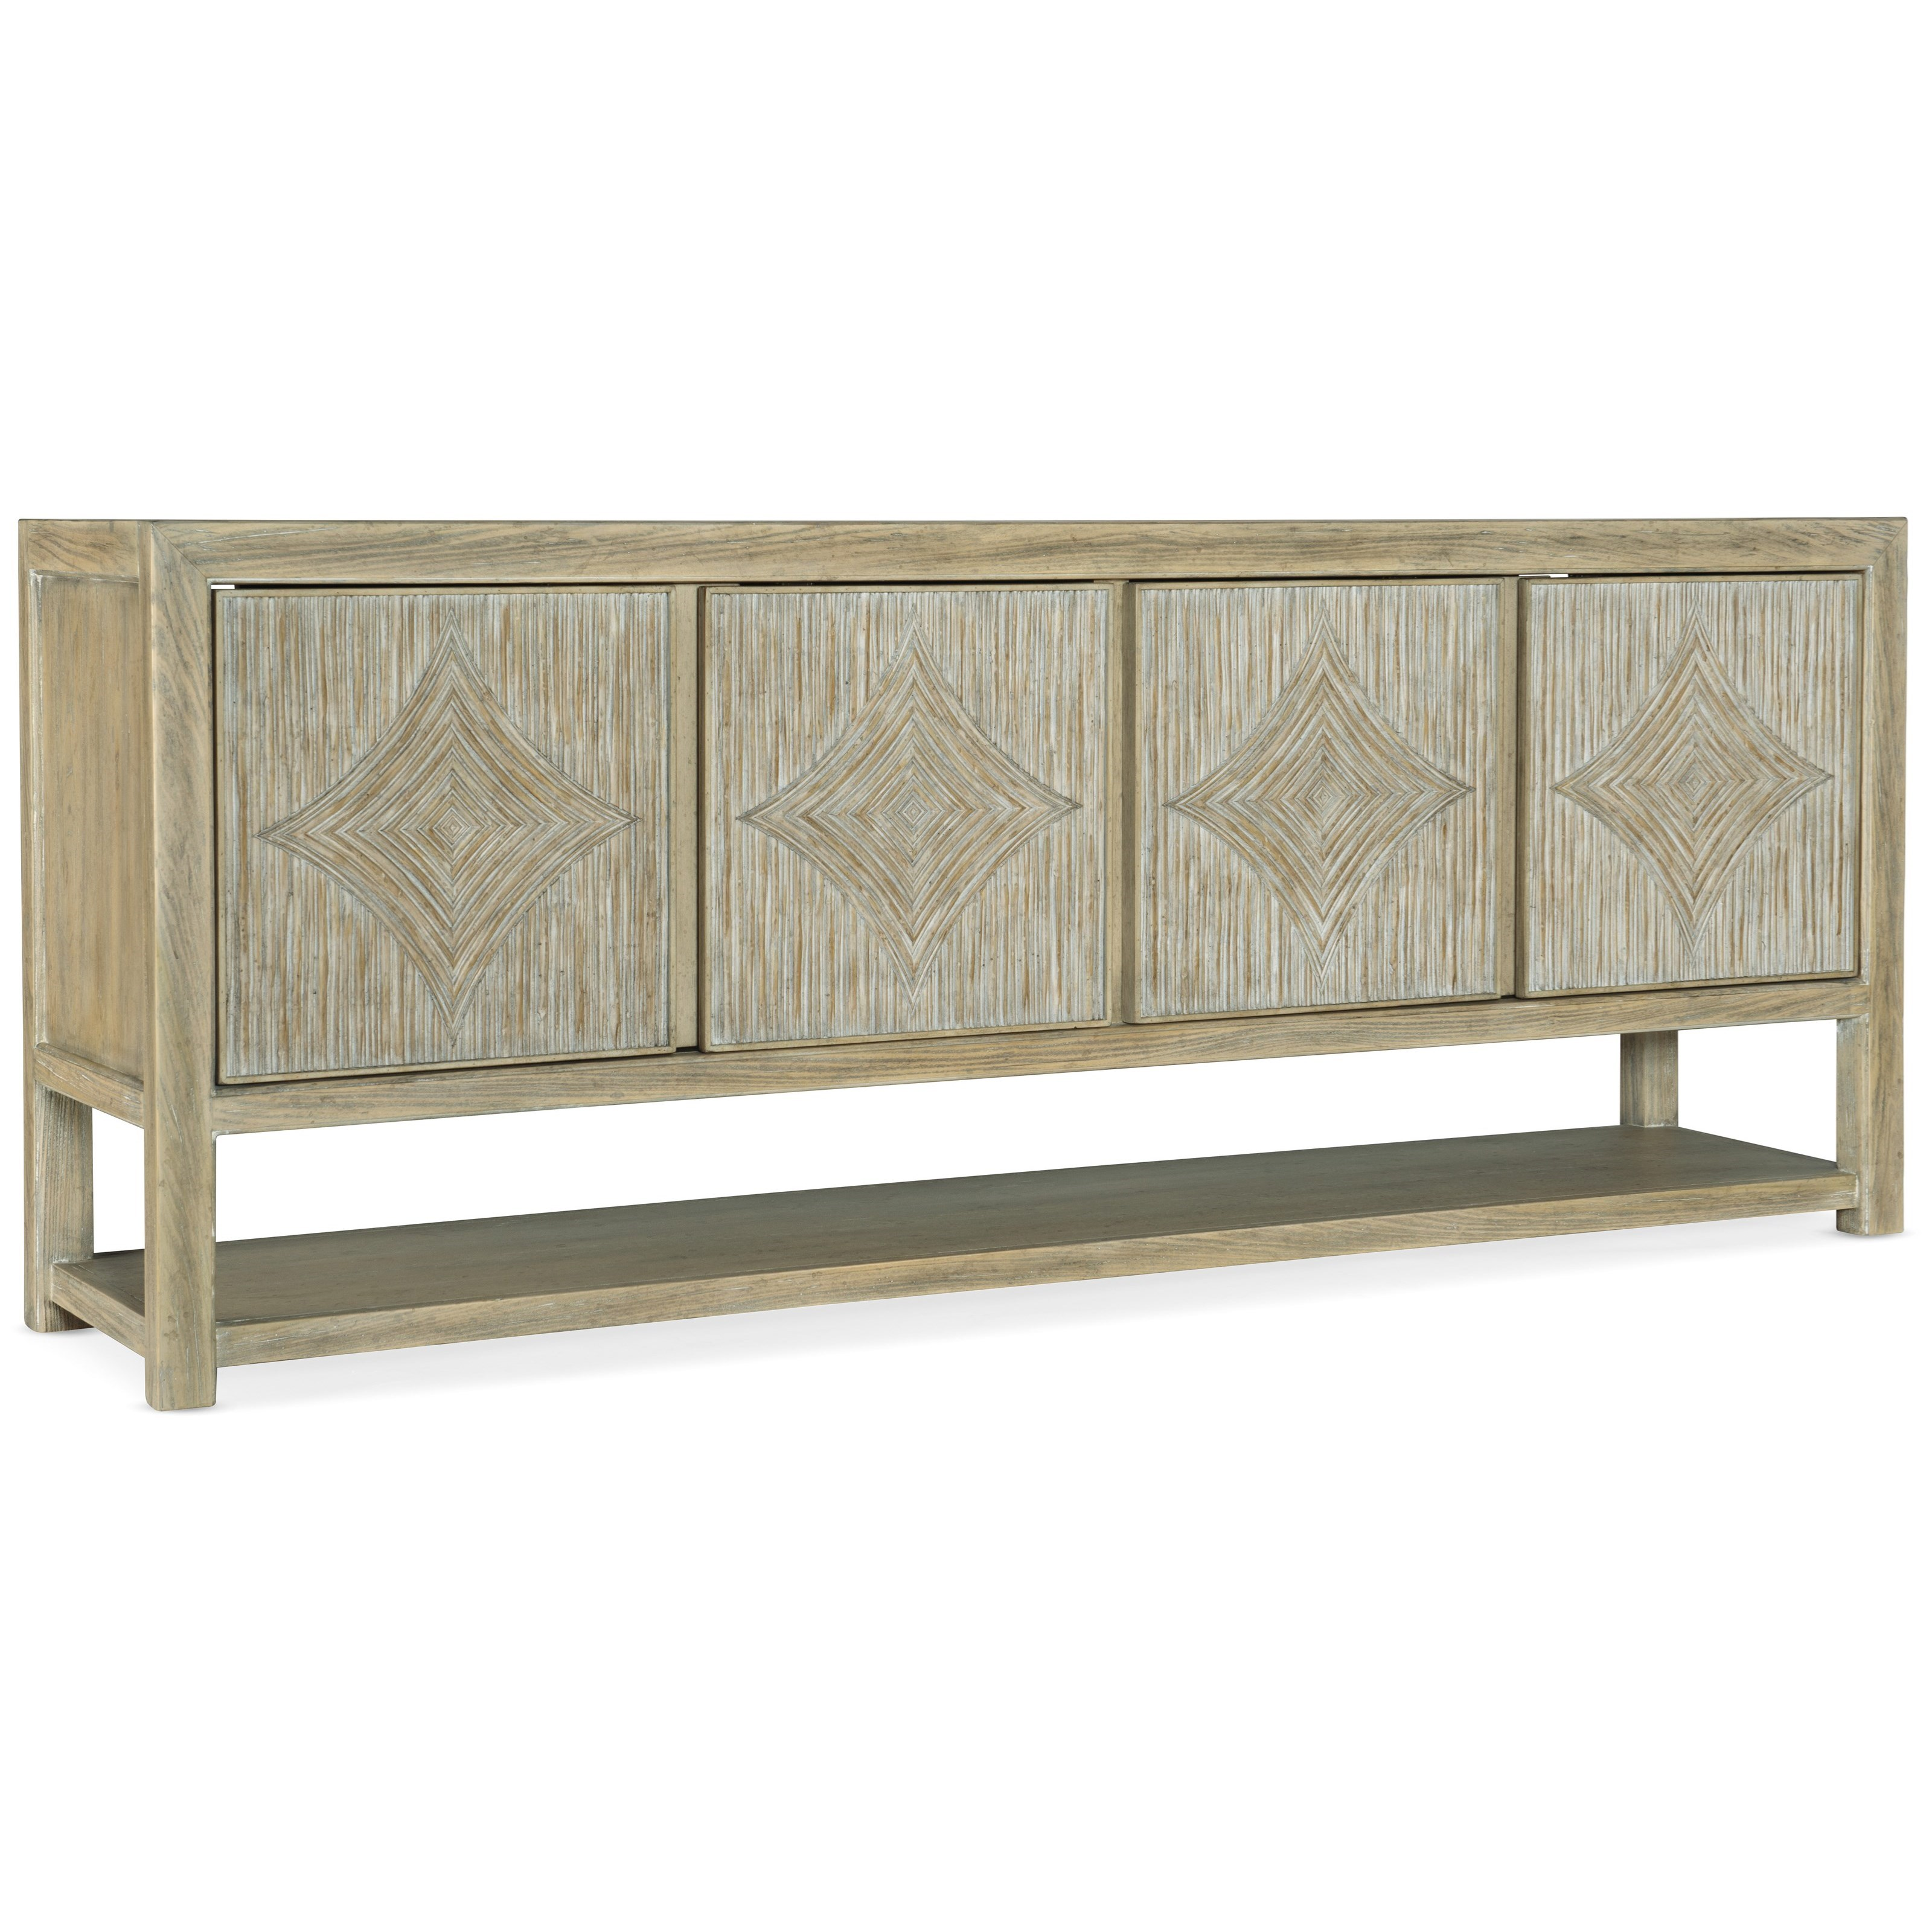 Surfrider Entertainment Console by Hooker Furniture at Mueller Furniture